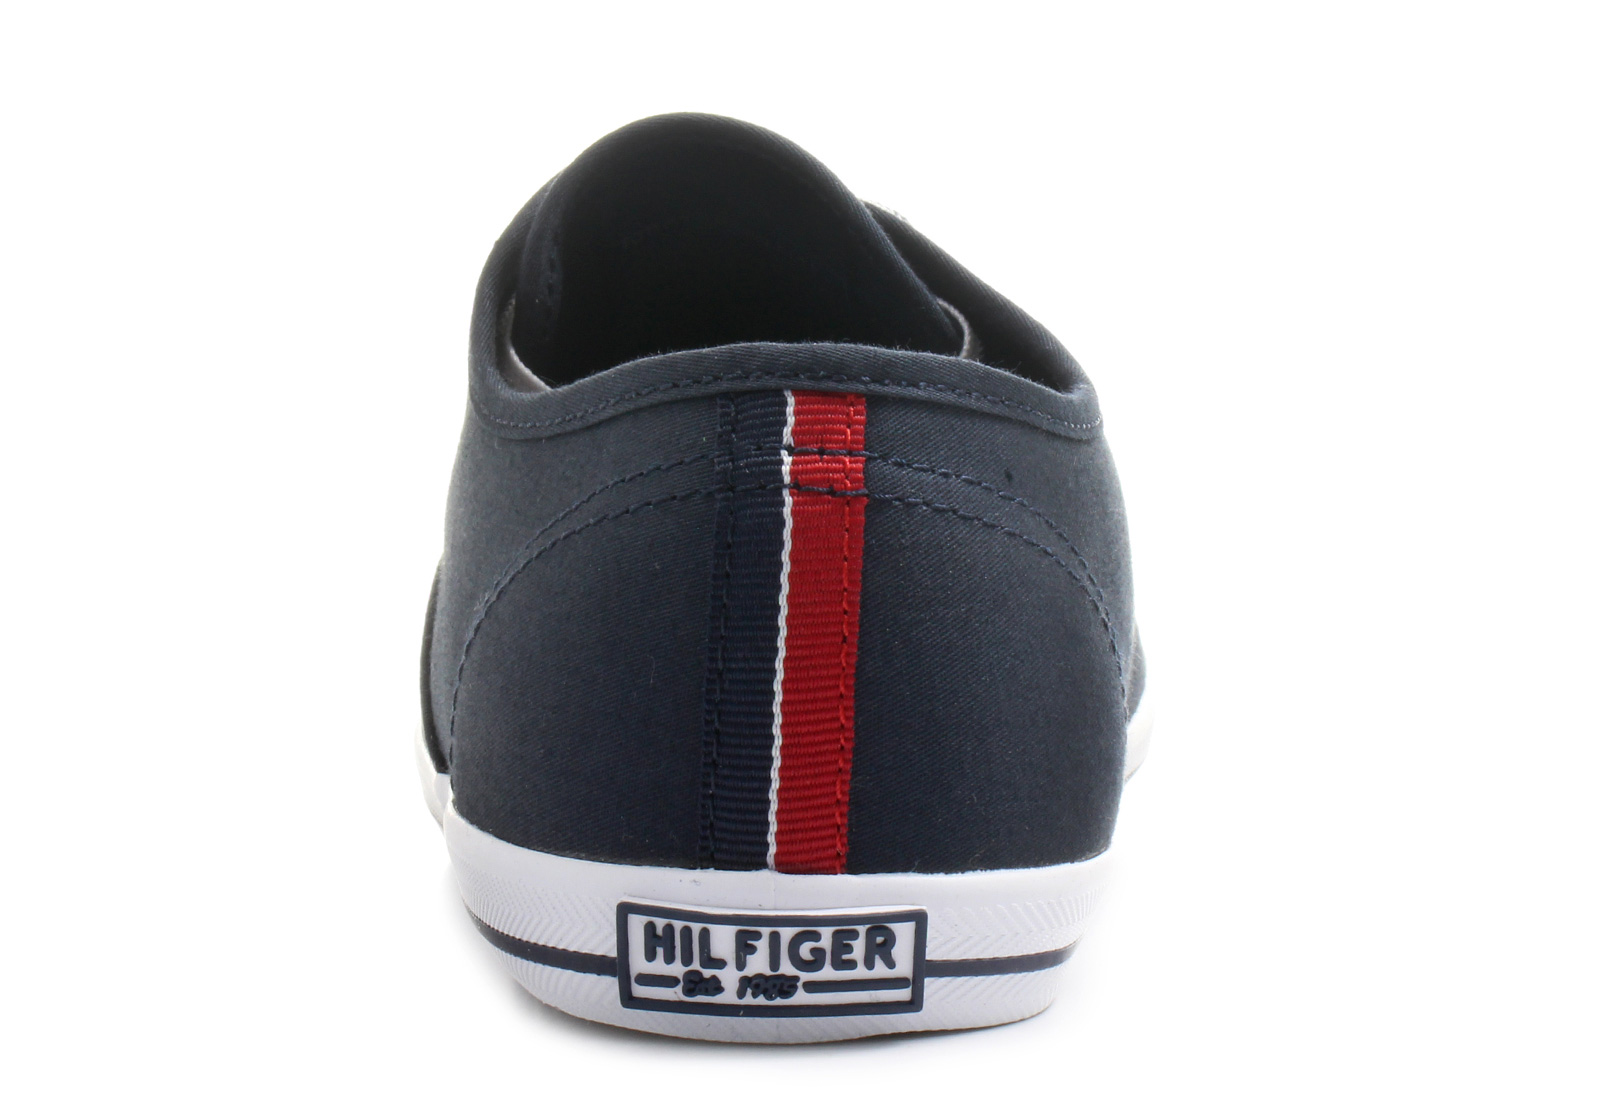 Tommy Hilfiger Cipő - Victoria 1d - 15S-9050-403 - Office Shoes ... a32e897355